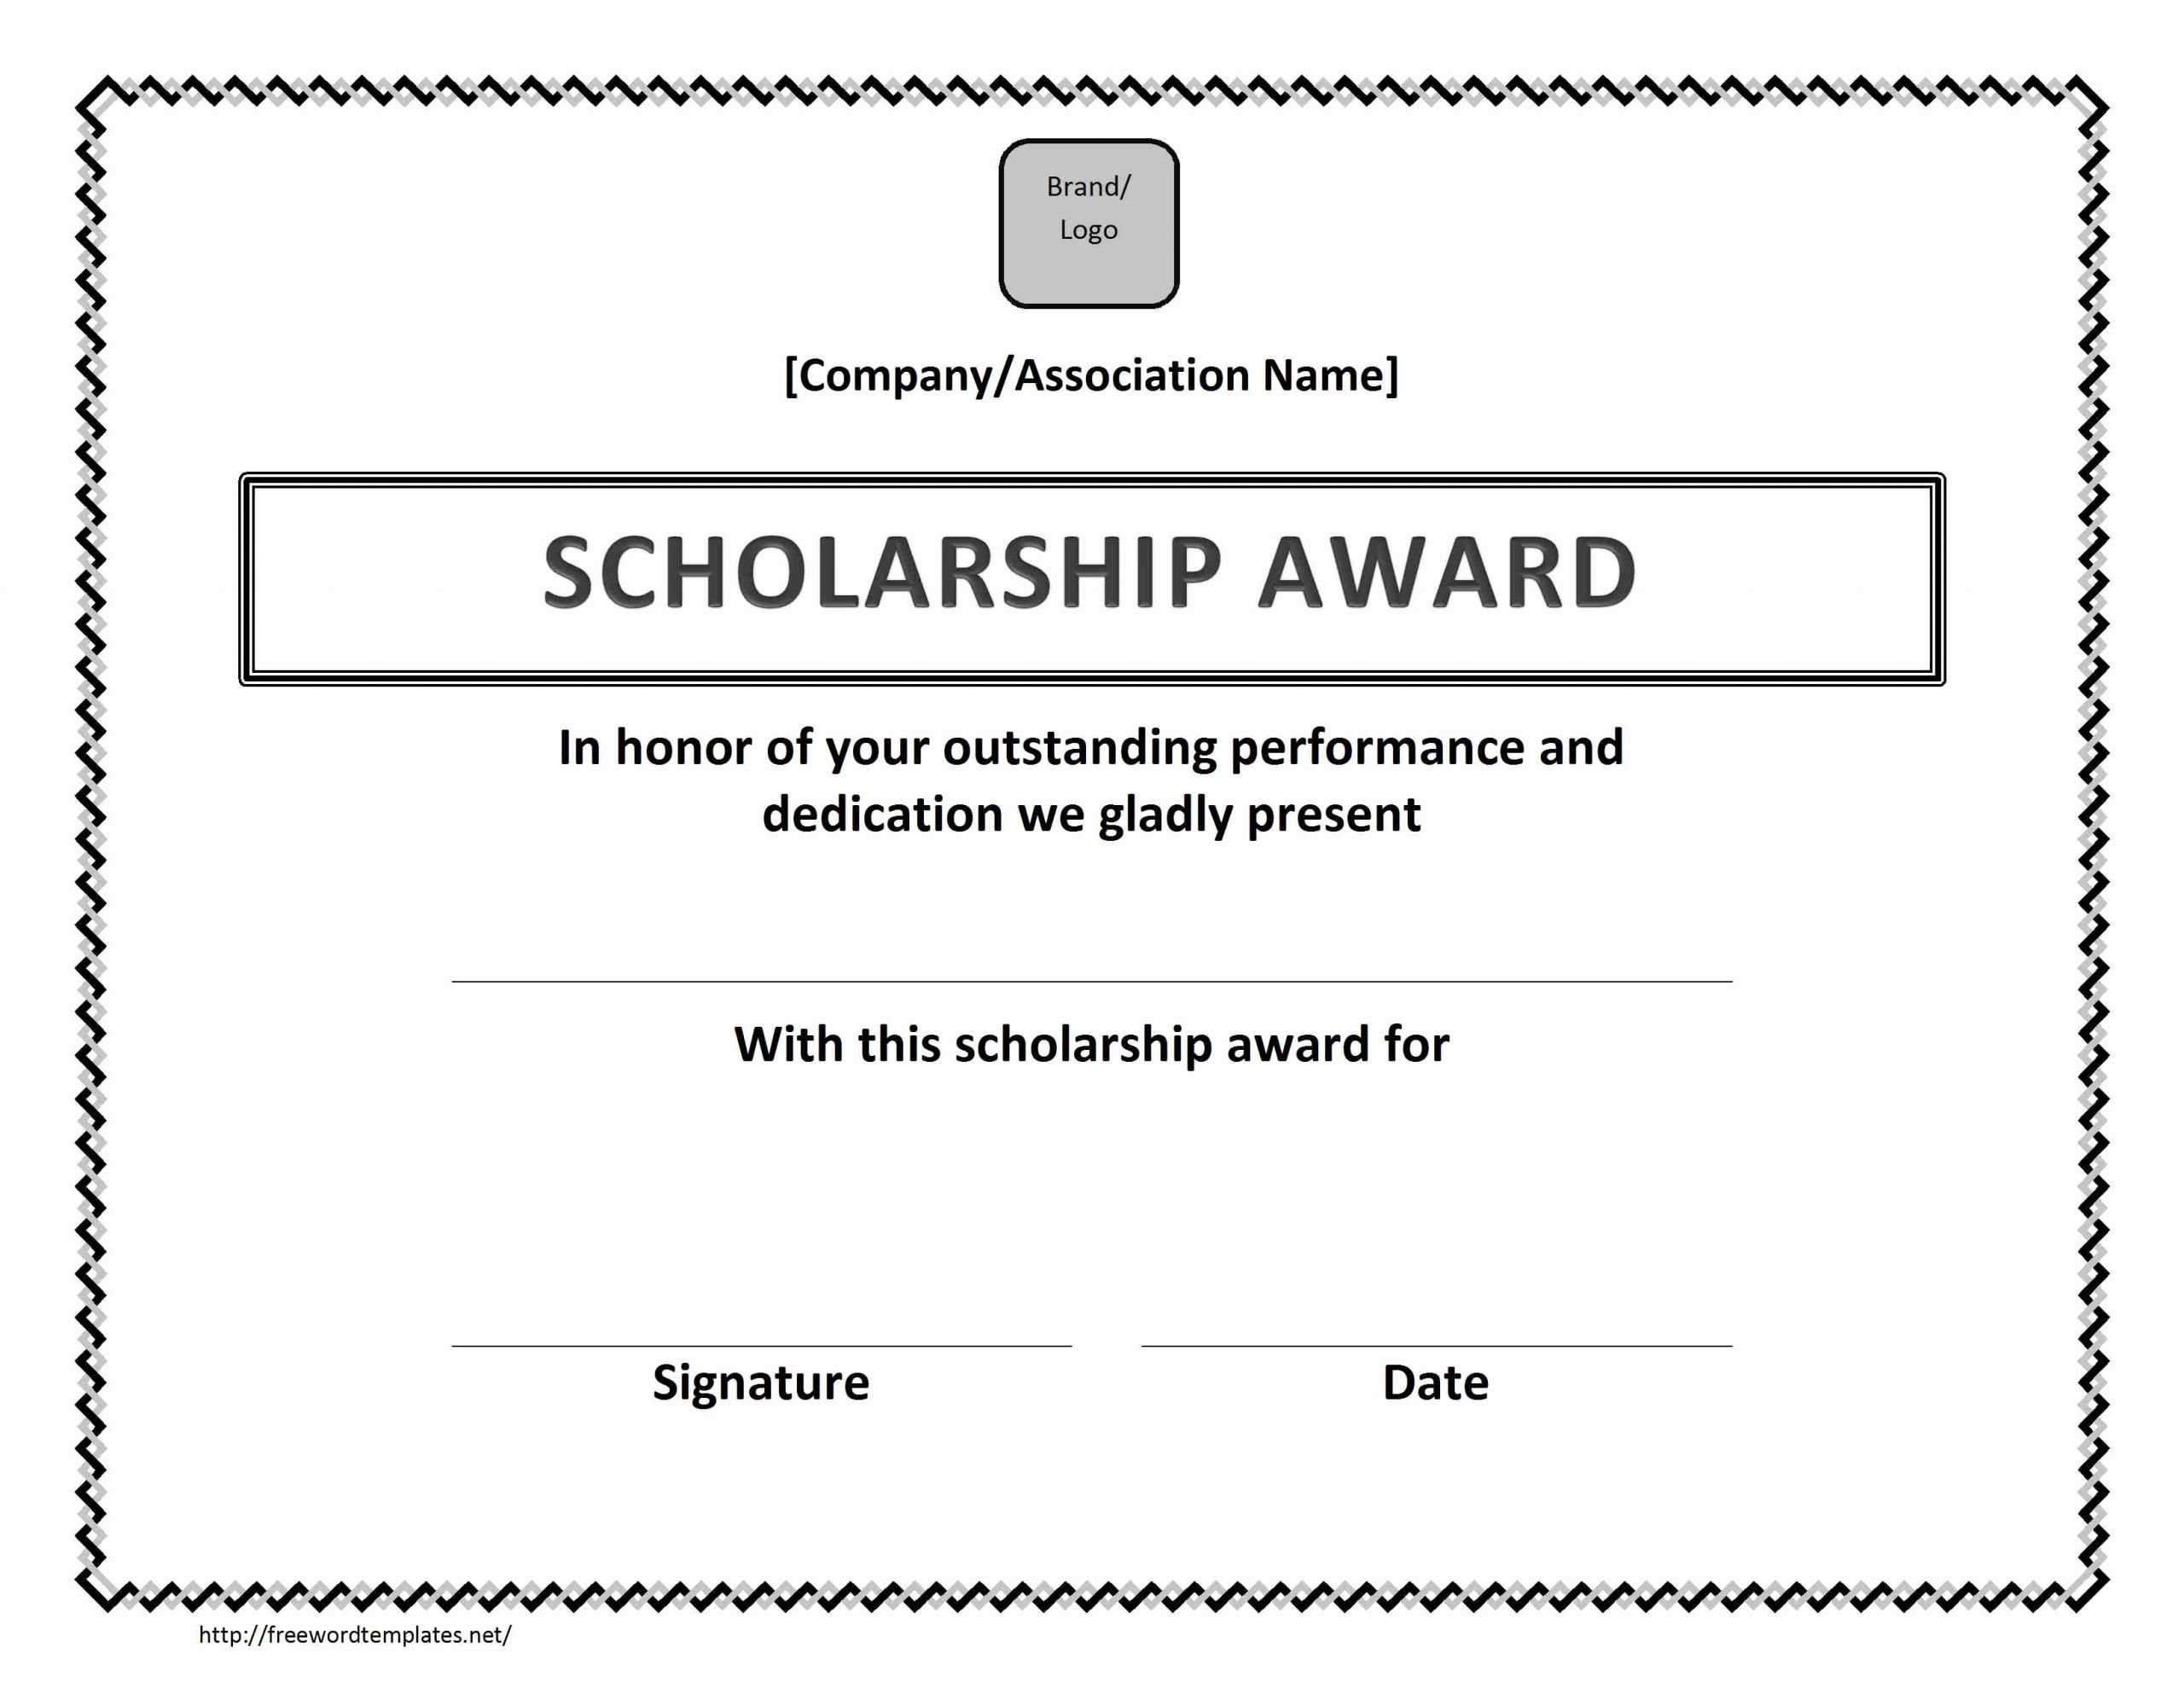 Awards Certificate Template Google Docs Best Of Scholarship Award Certificate